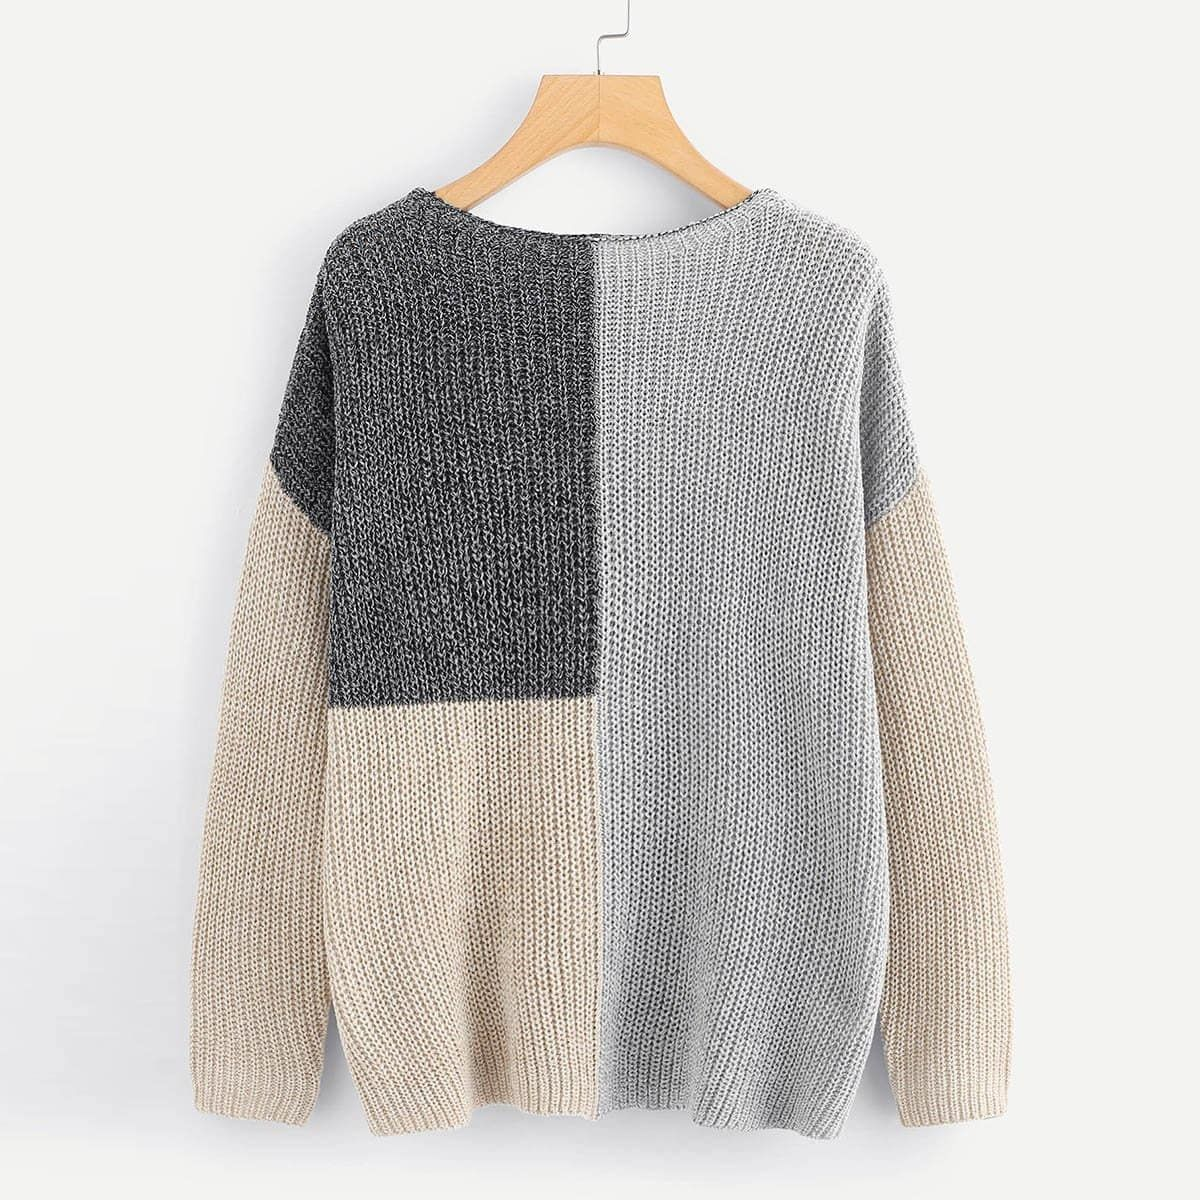 Pandapang Boy and Girl Jumper Knitted Pullover Turtleneck Long Sleeve Fall Winter Sweater